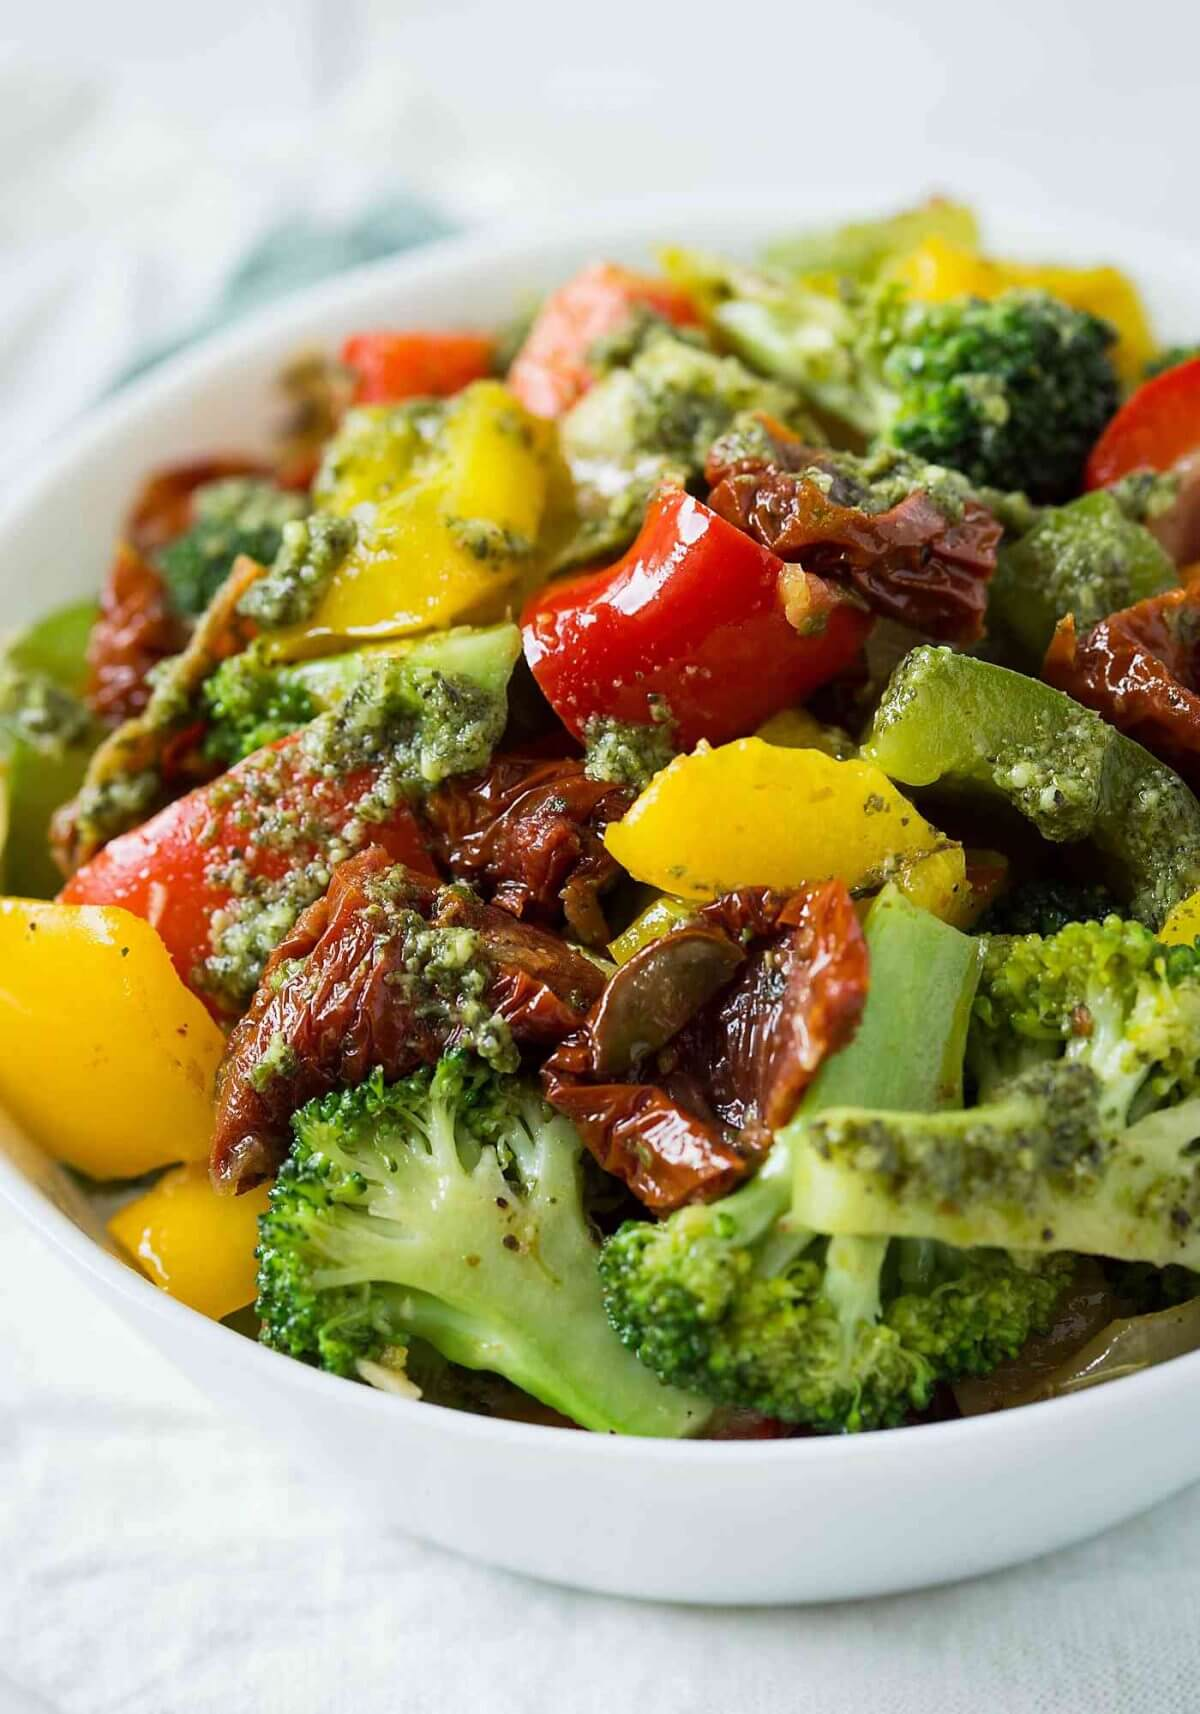 Stir-fry veggies